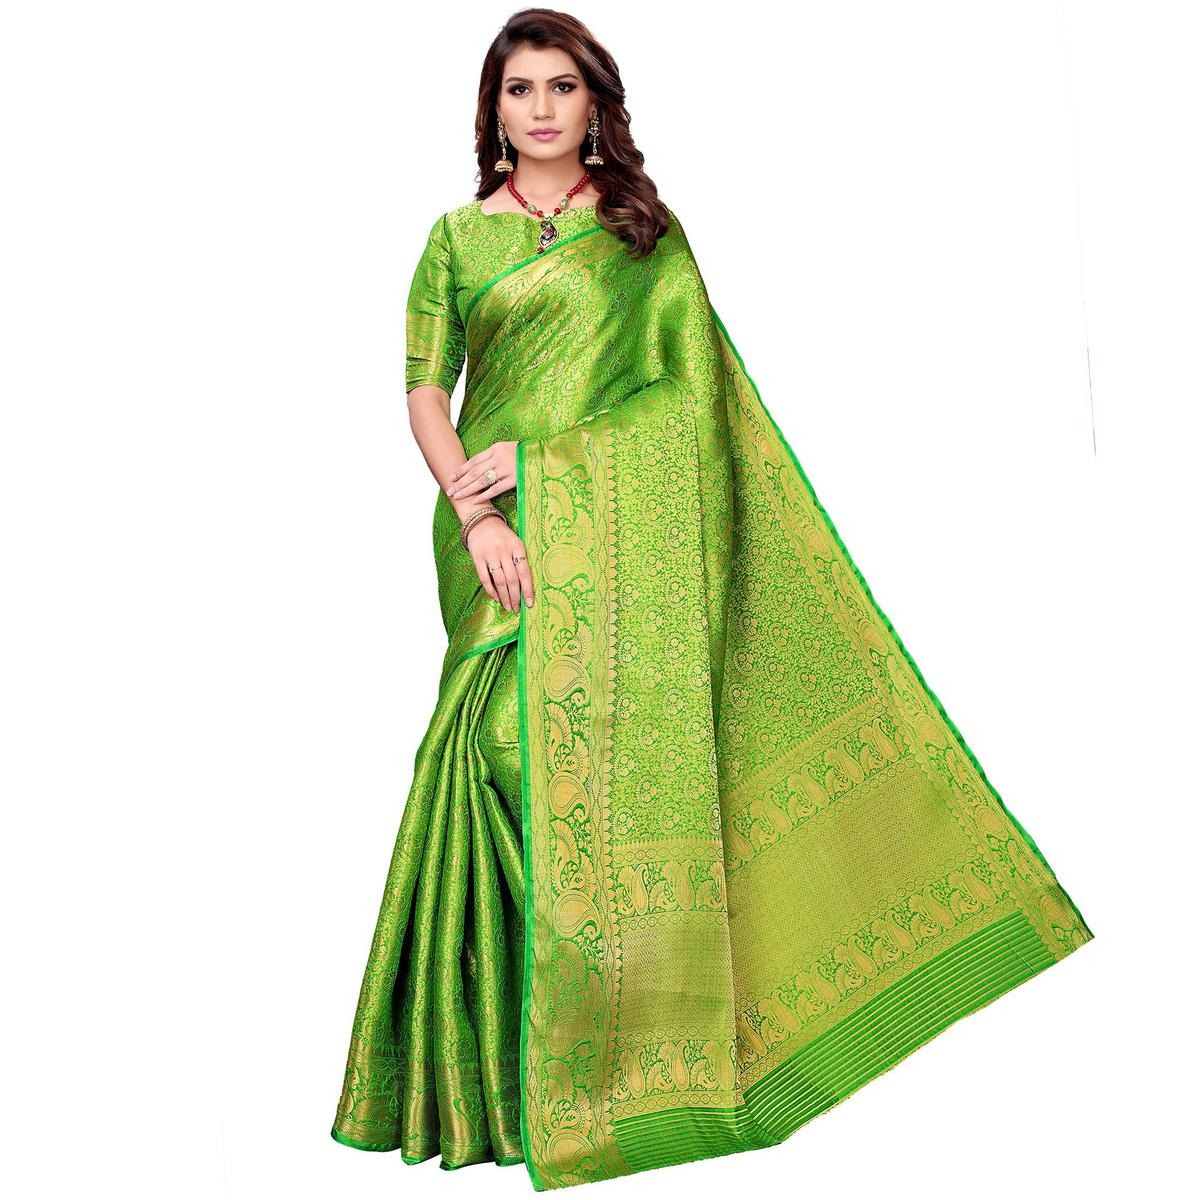 Delightful Green Colored Festive Wear Woven Silk Saree